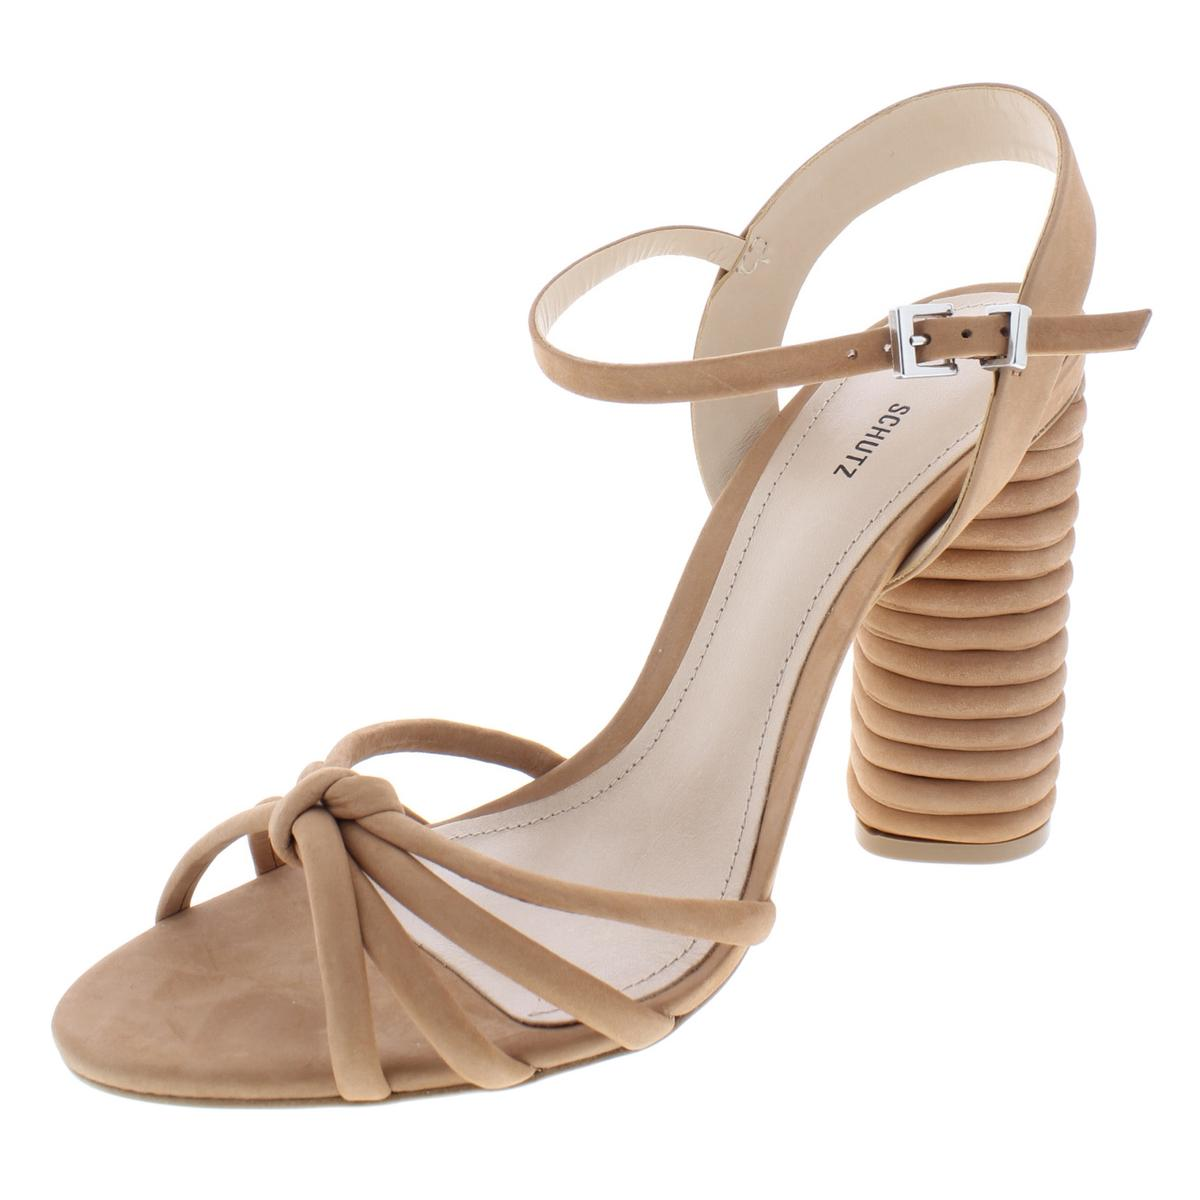 7e2d8157d66 Details about Schutz Womens Paolla Beige Tubular Evening Heels Shoes 9  Medium (B